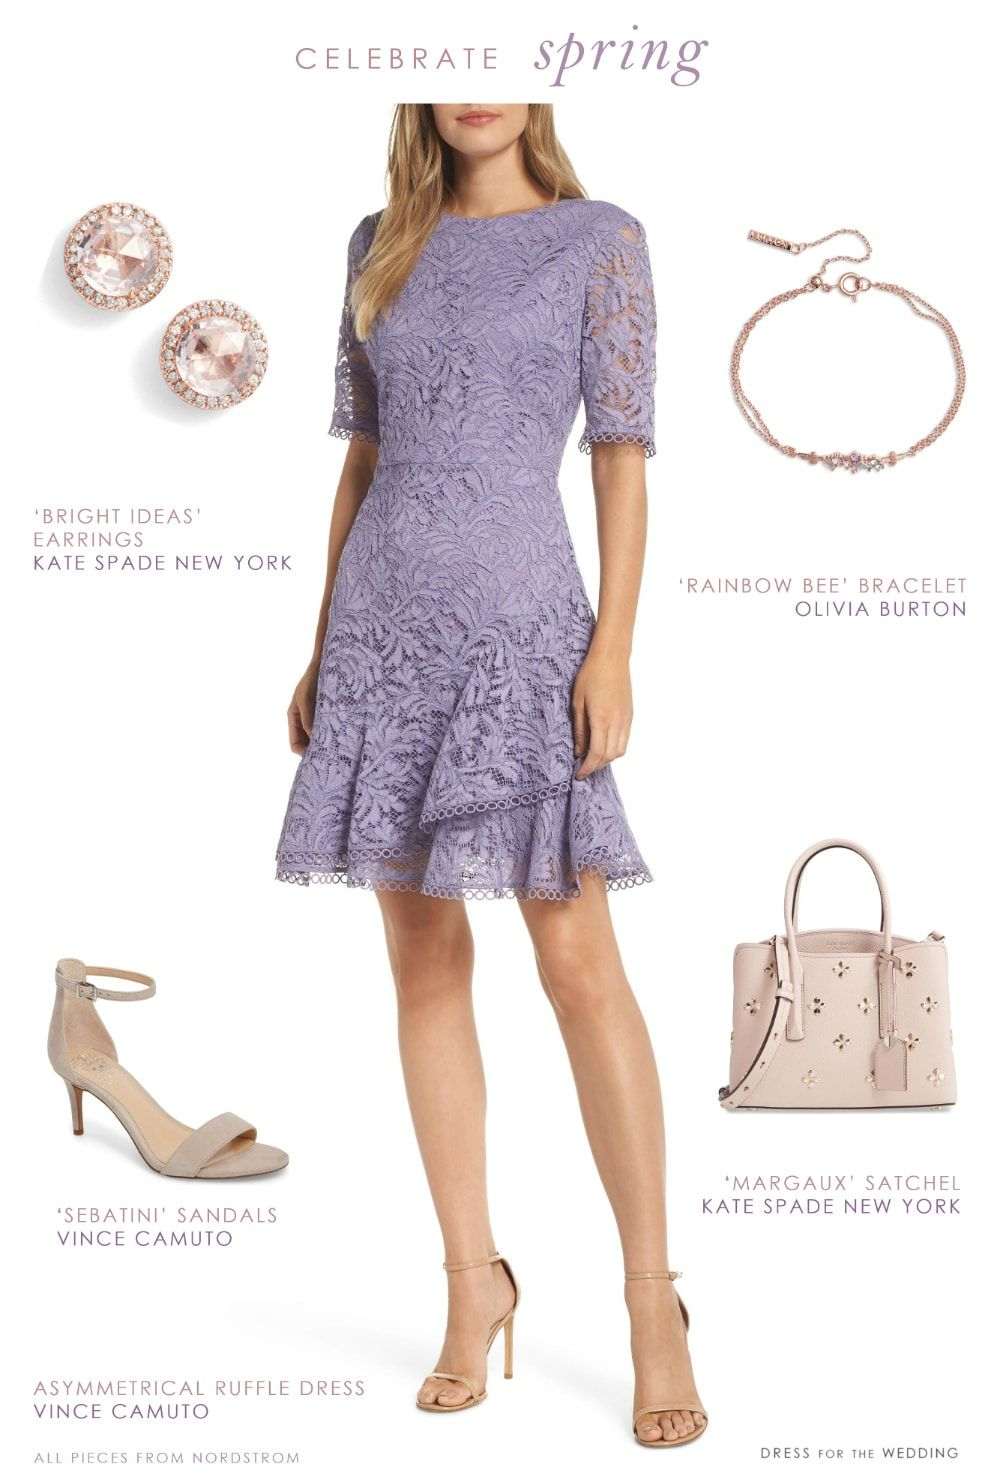 New Outfits For Spring Celebrations Dress For The Wedding Lace Dress Outfit Lavender Lace Dress Spring Outfits